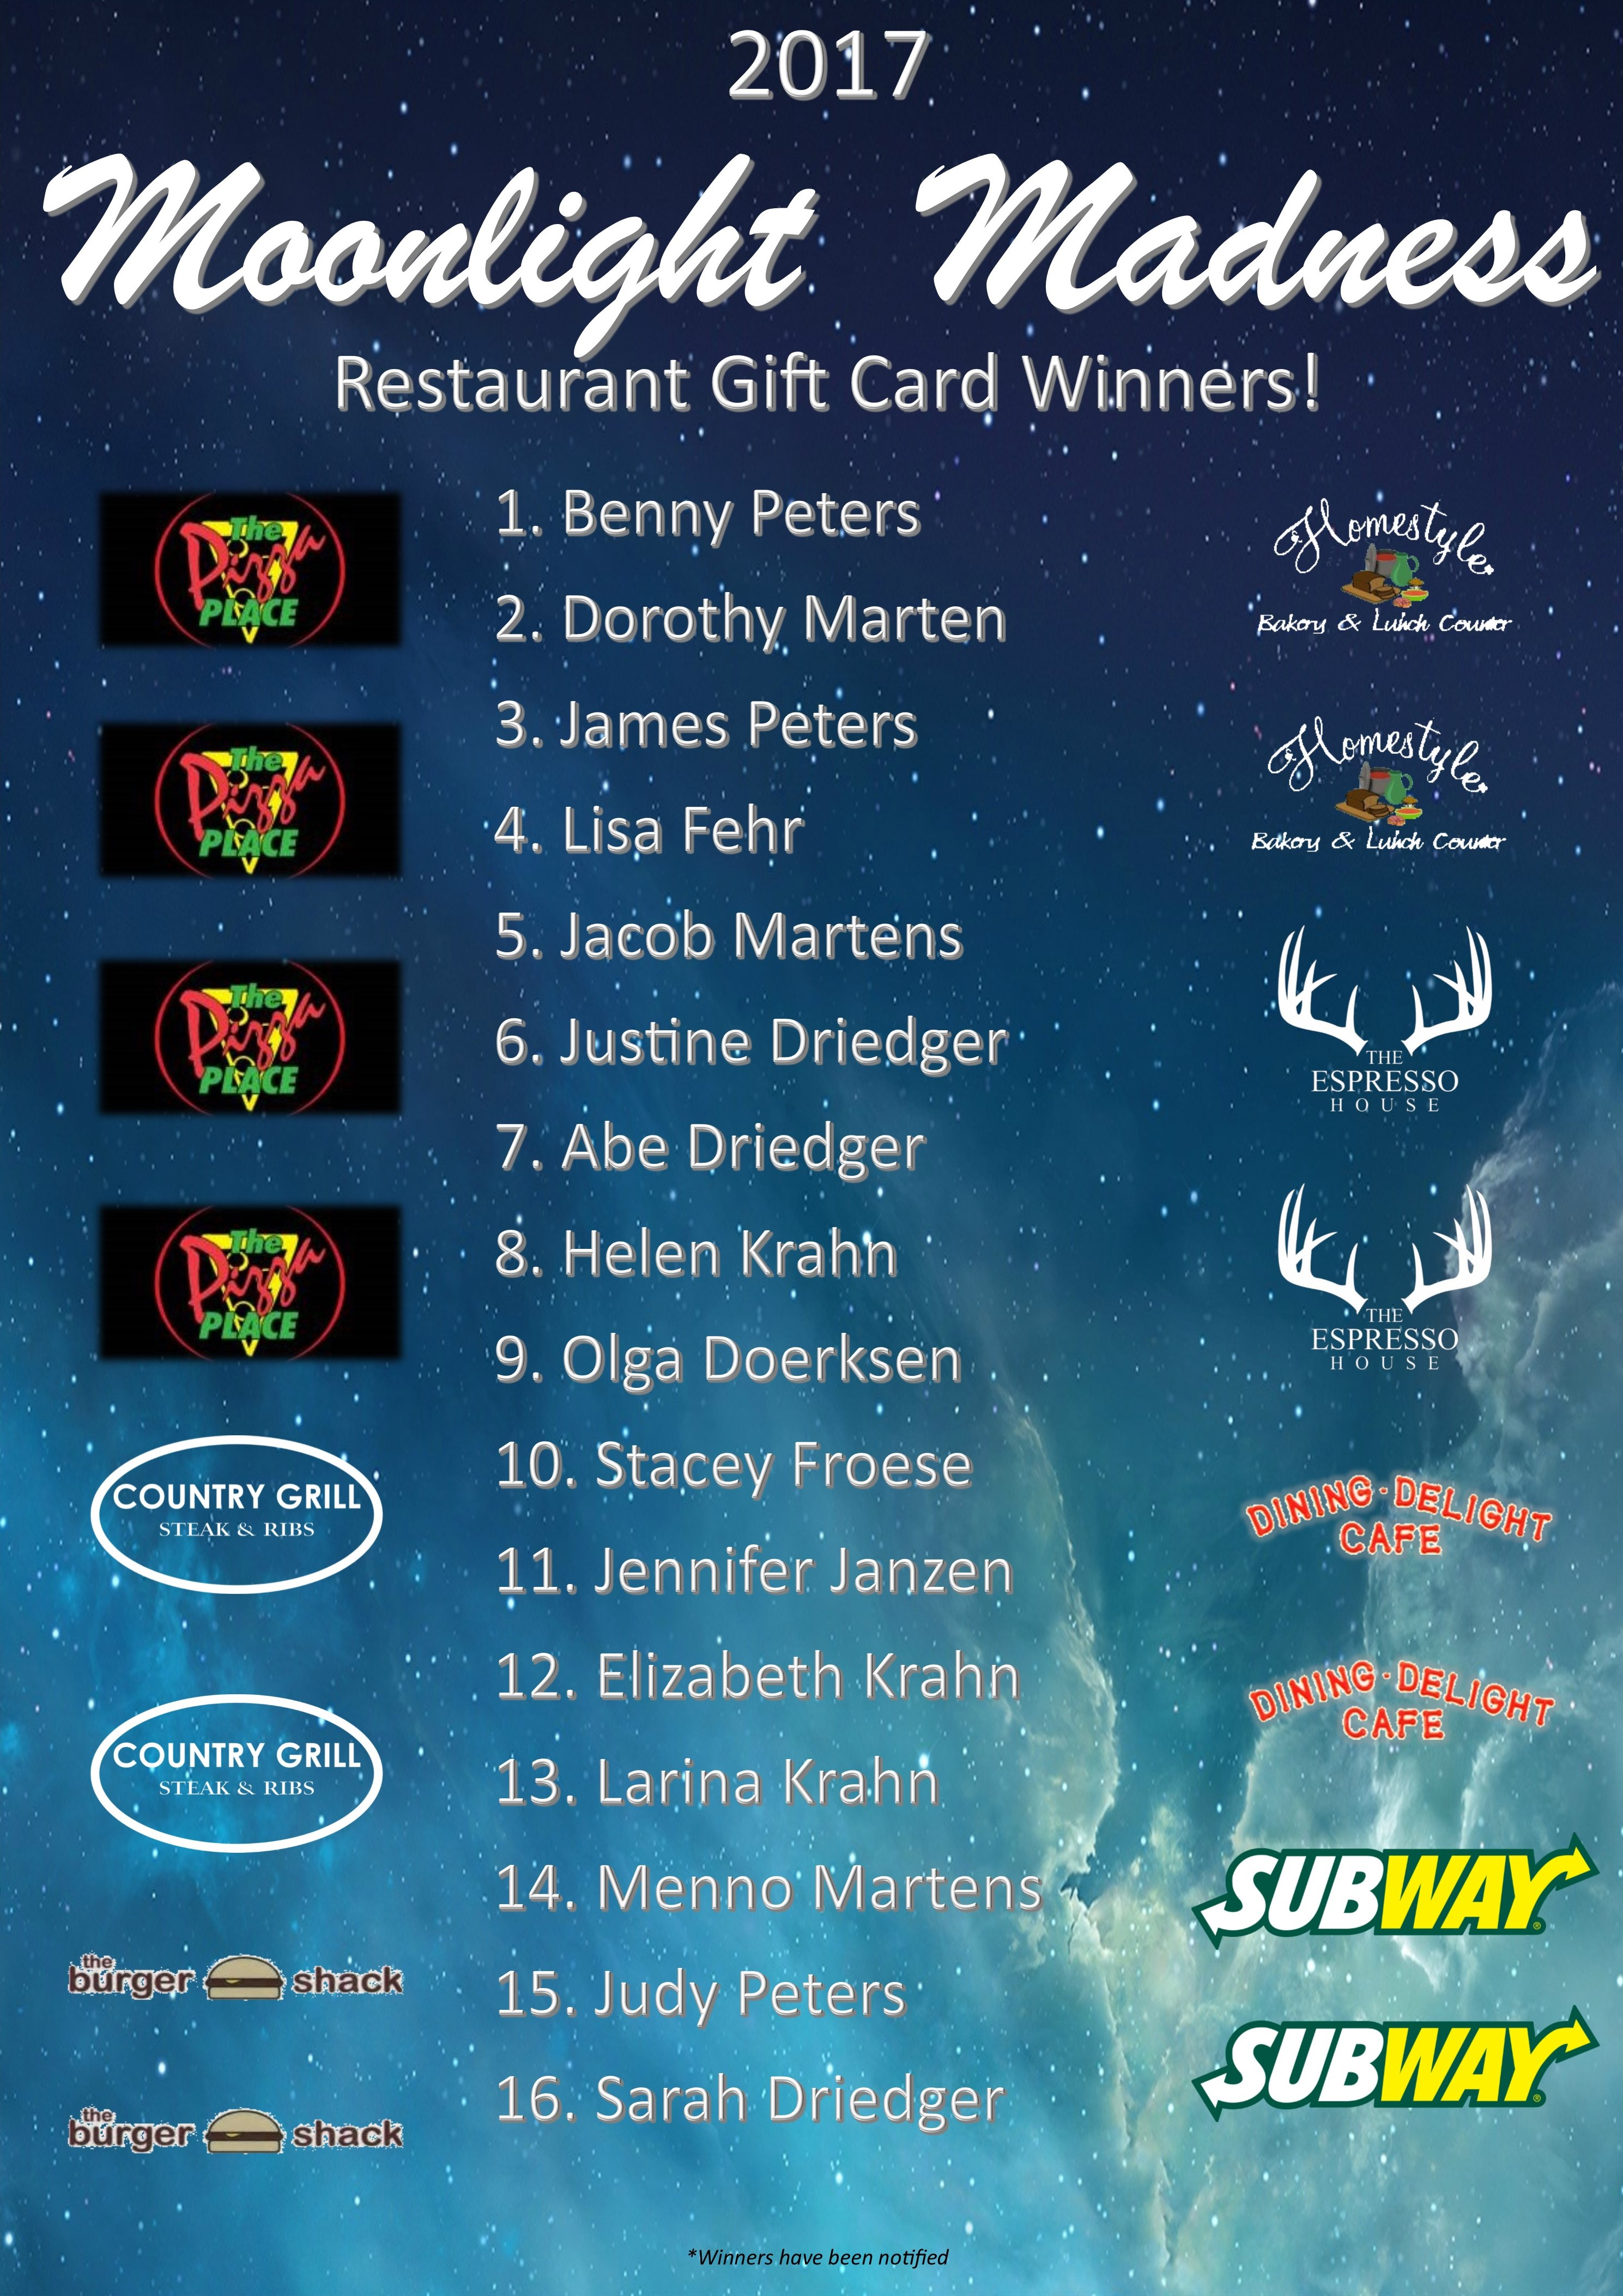 2017 Restaurant Gift Card Winners